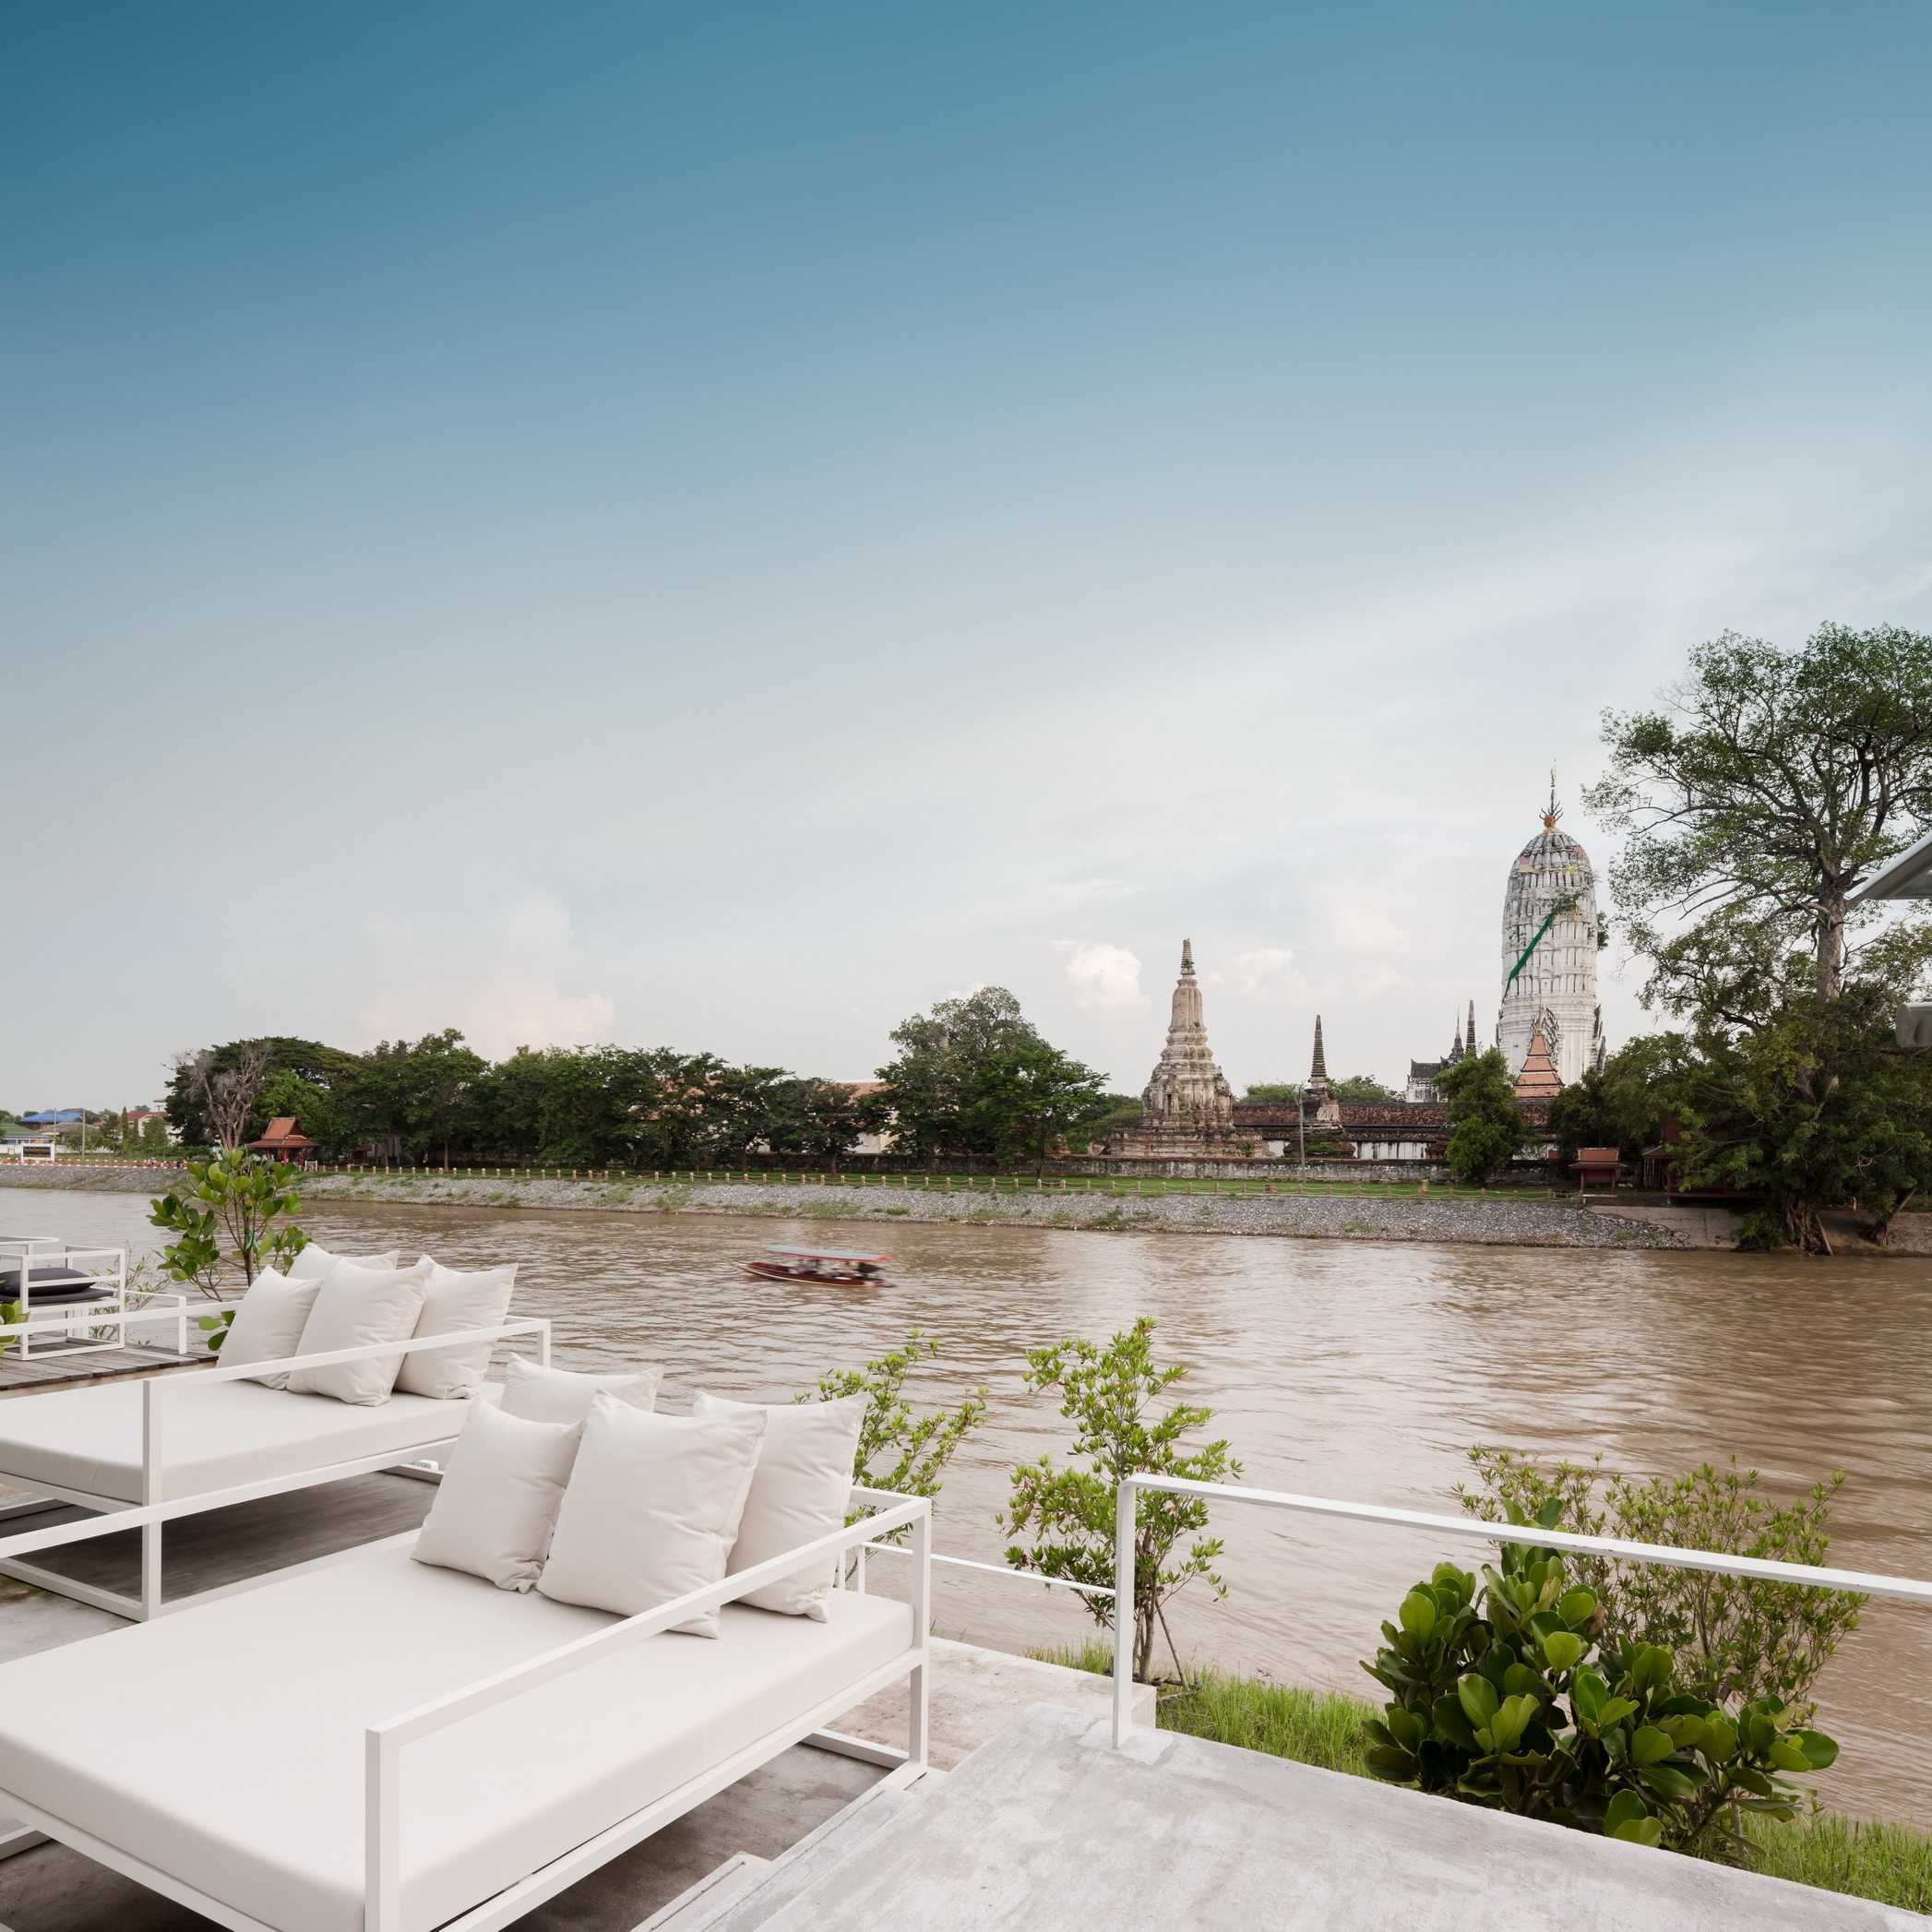 Sala Ayutthaya Hotel by Onion